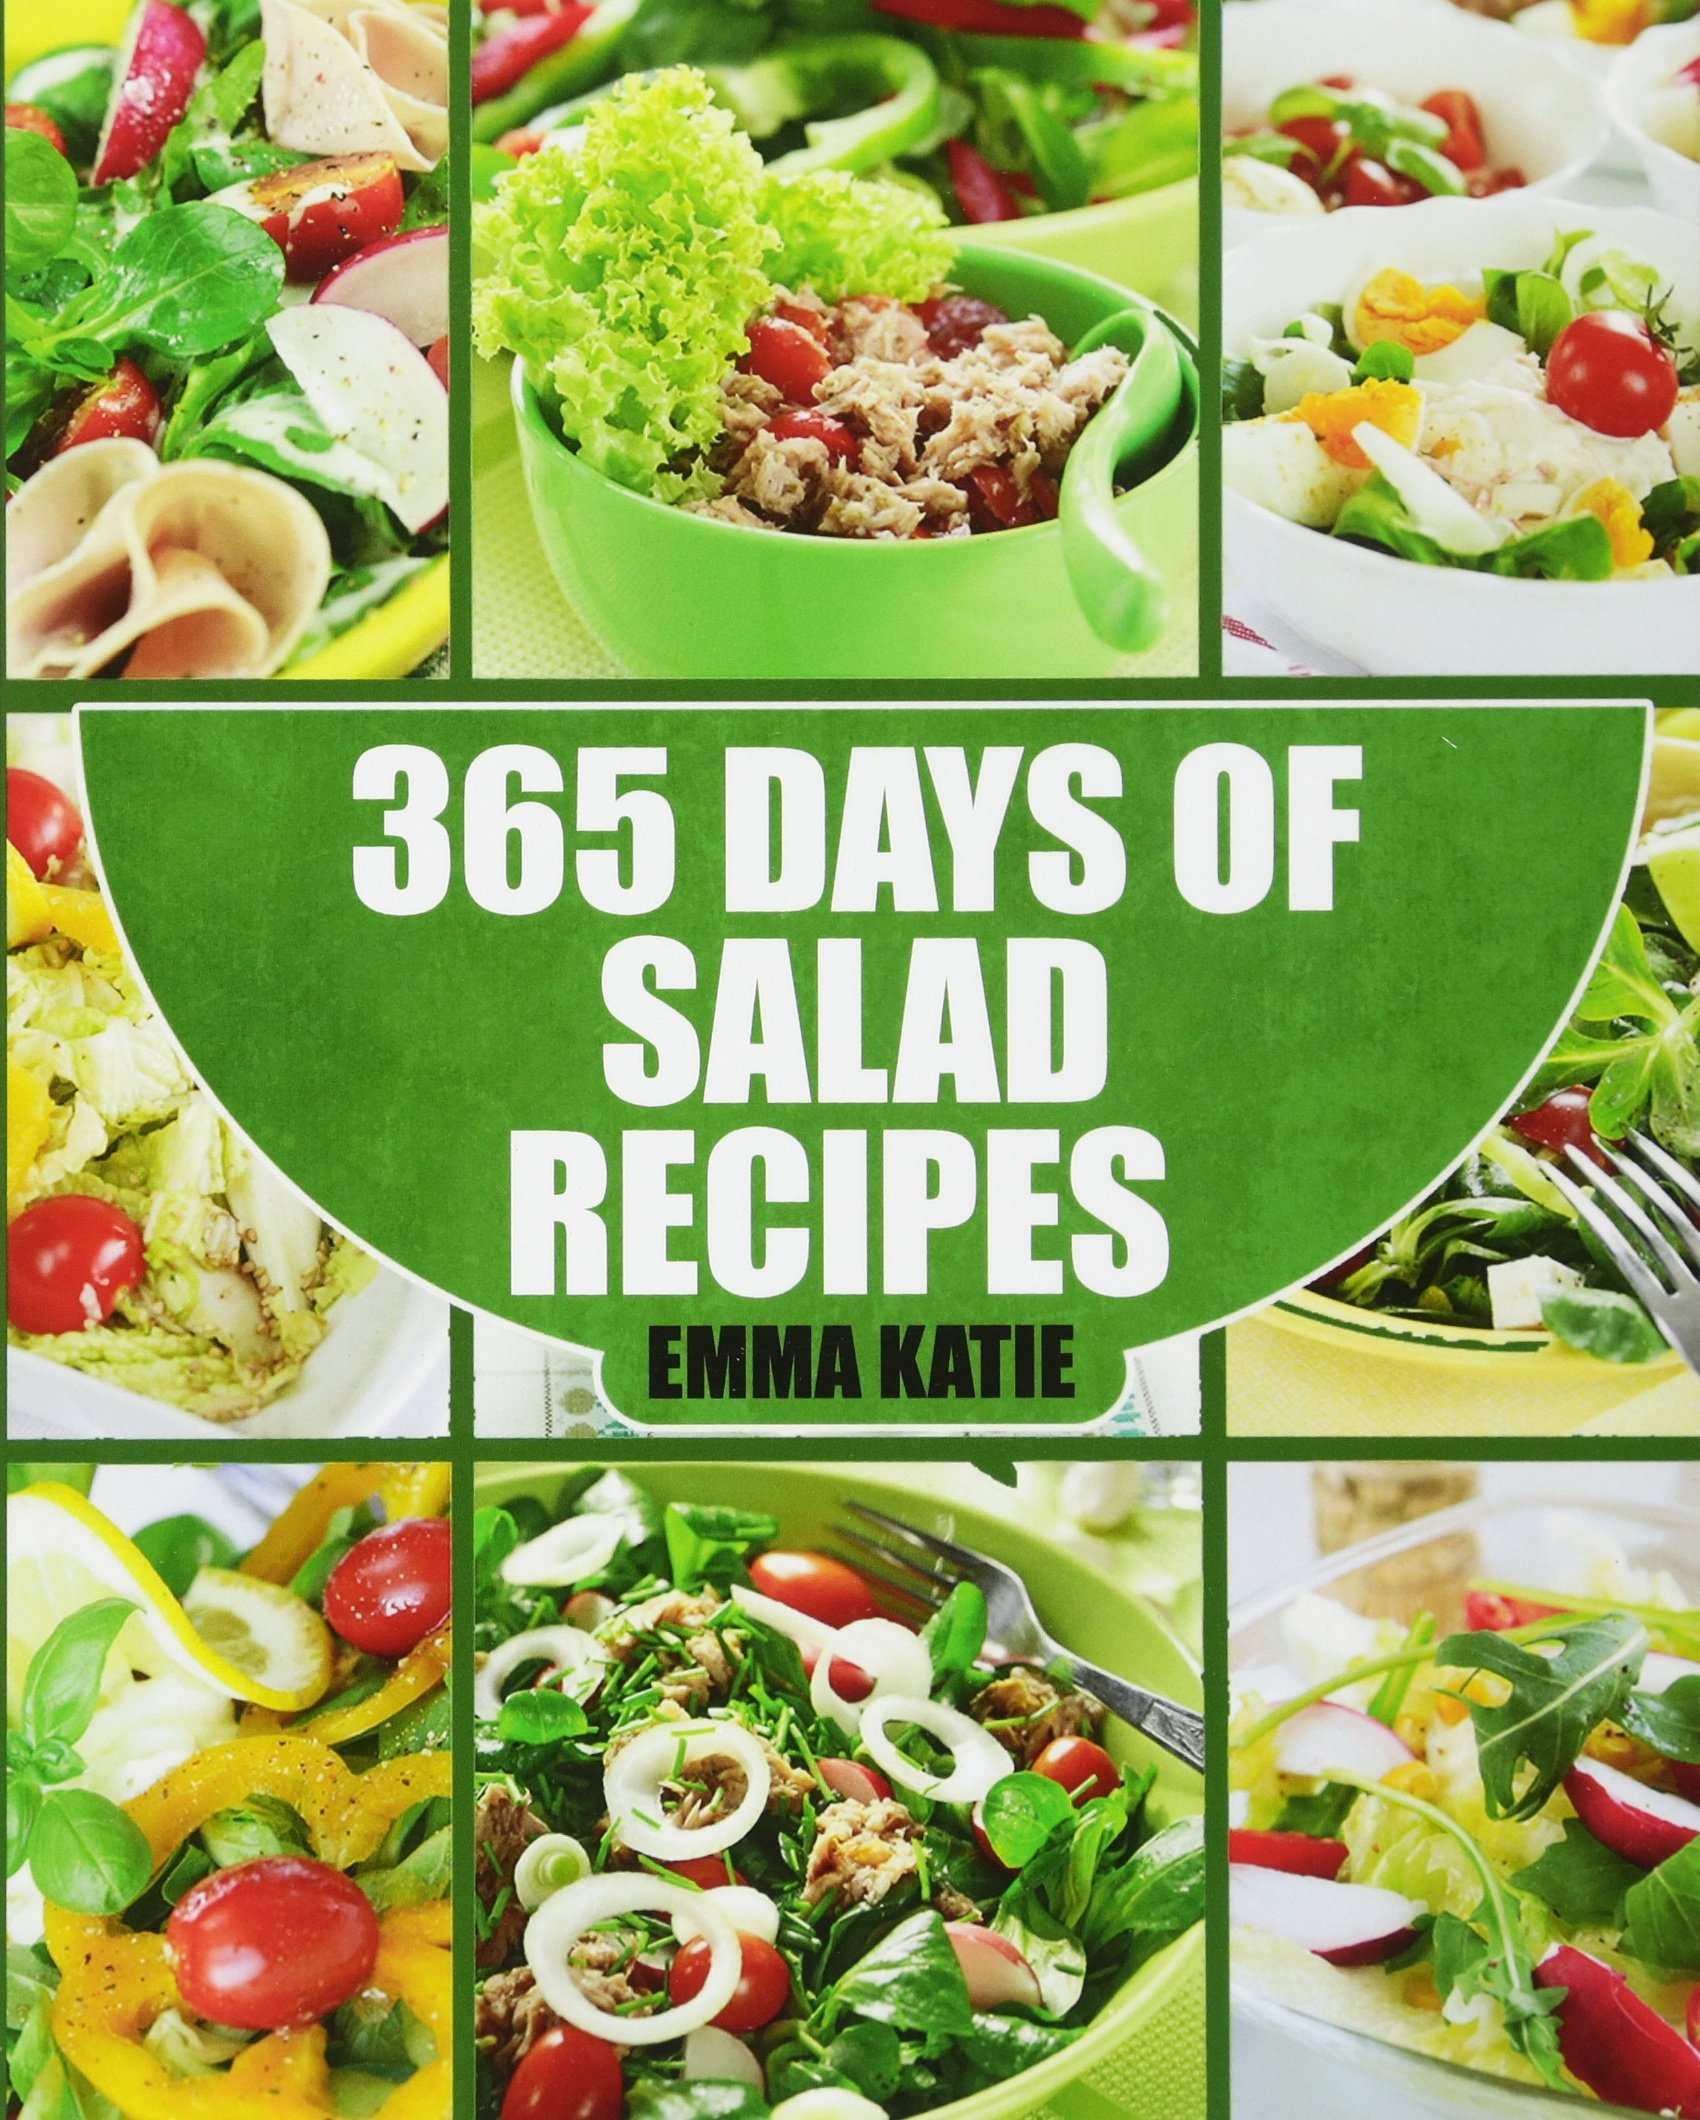 How to prepare a salad Carousel